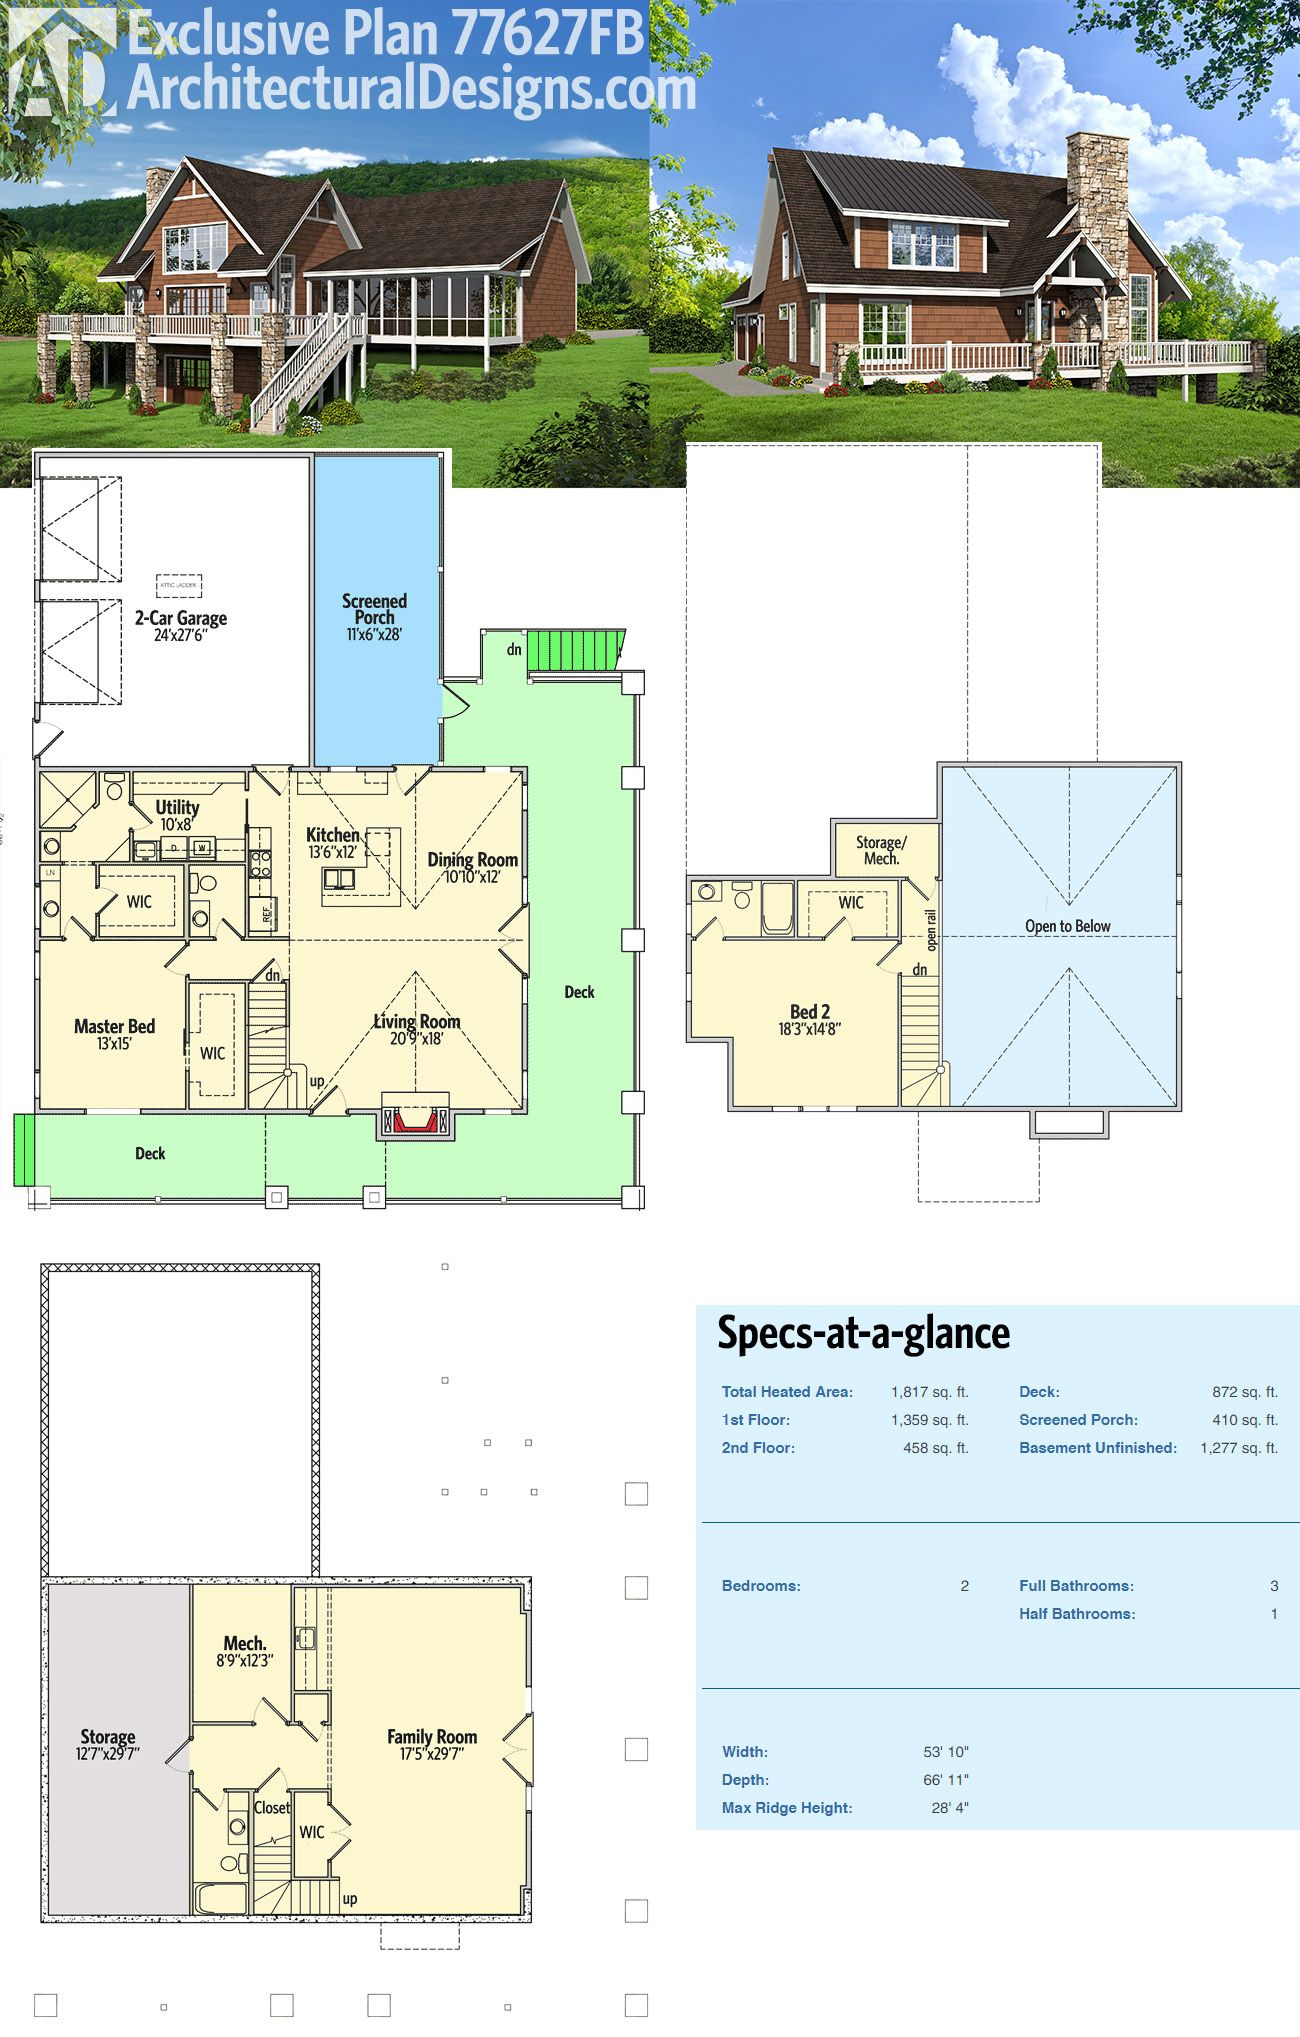 Introducing Architectural Designs Exclusive House Plan 77627FB